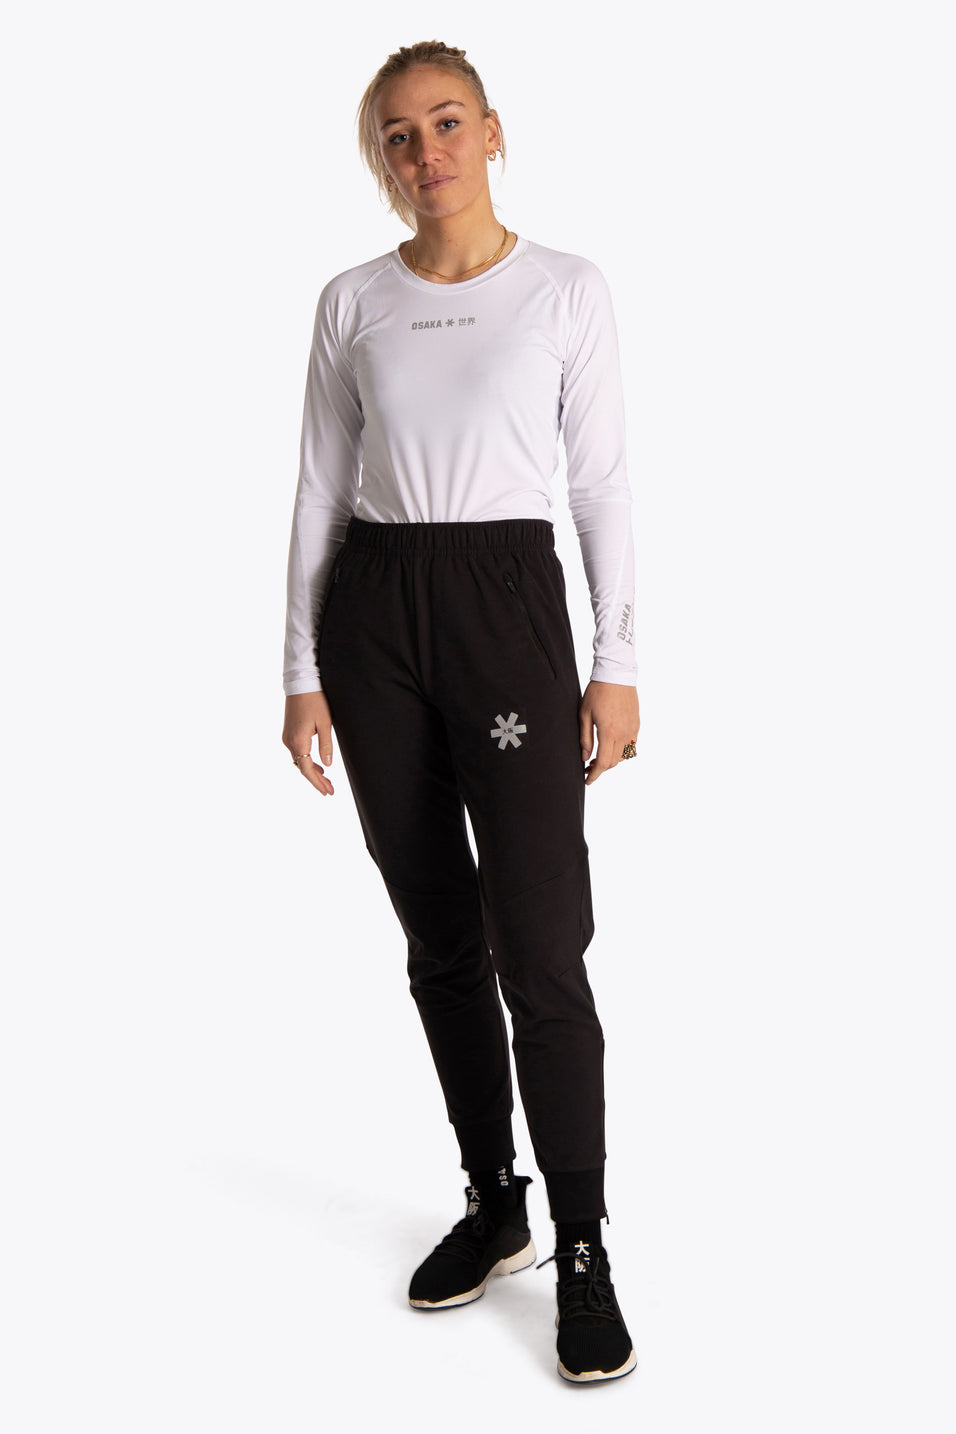 Osaka base layer for women